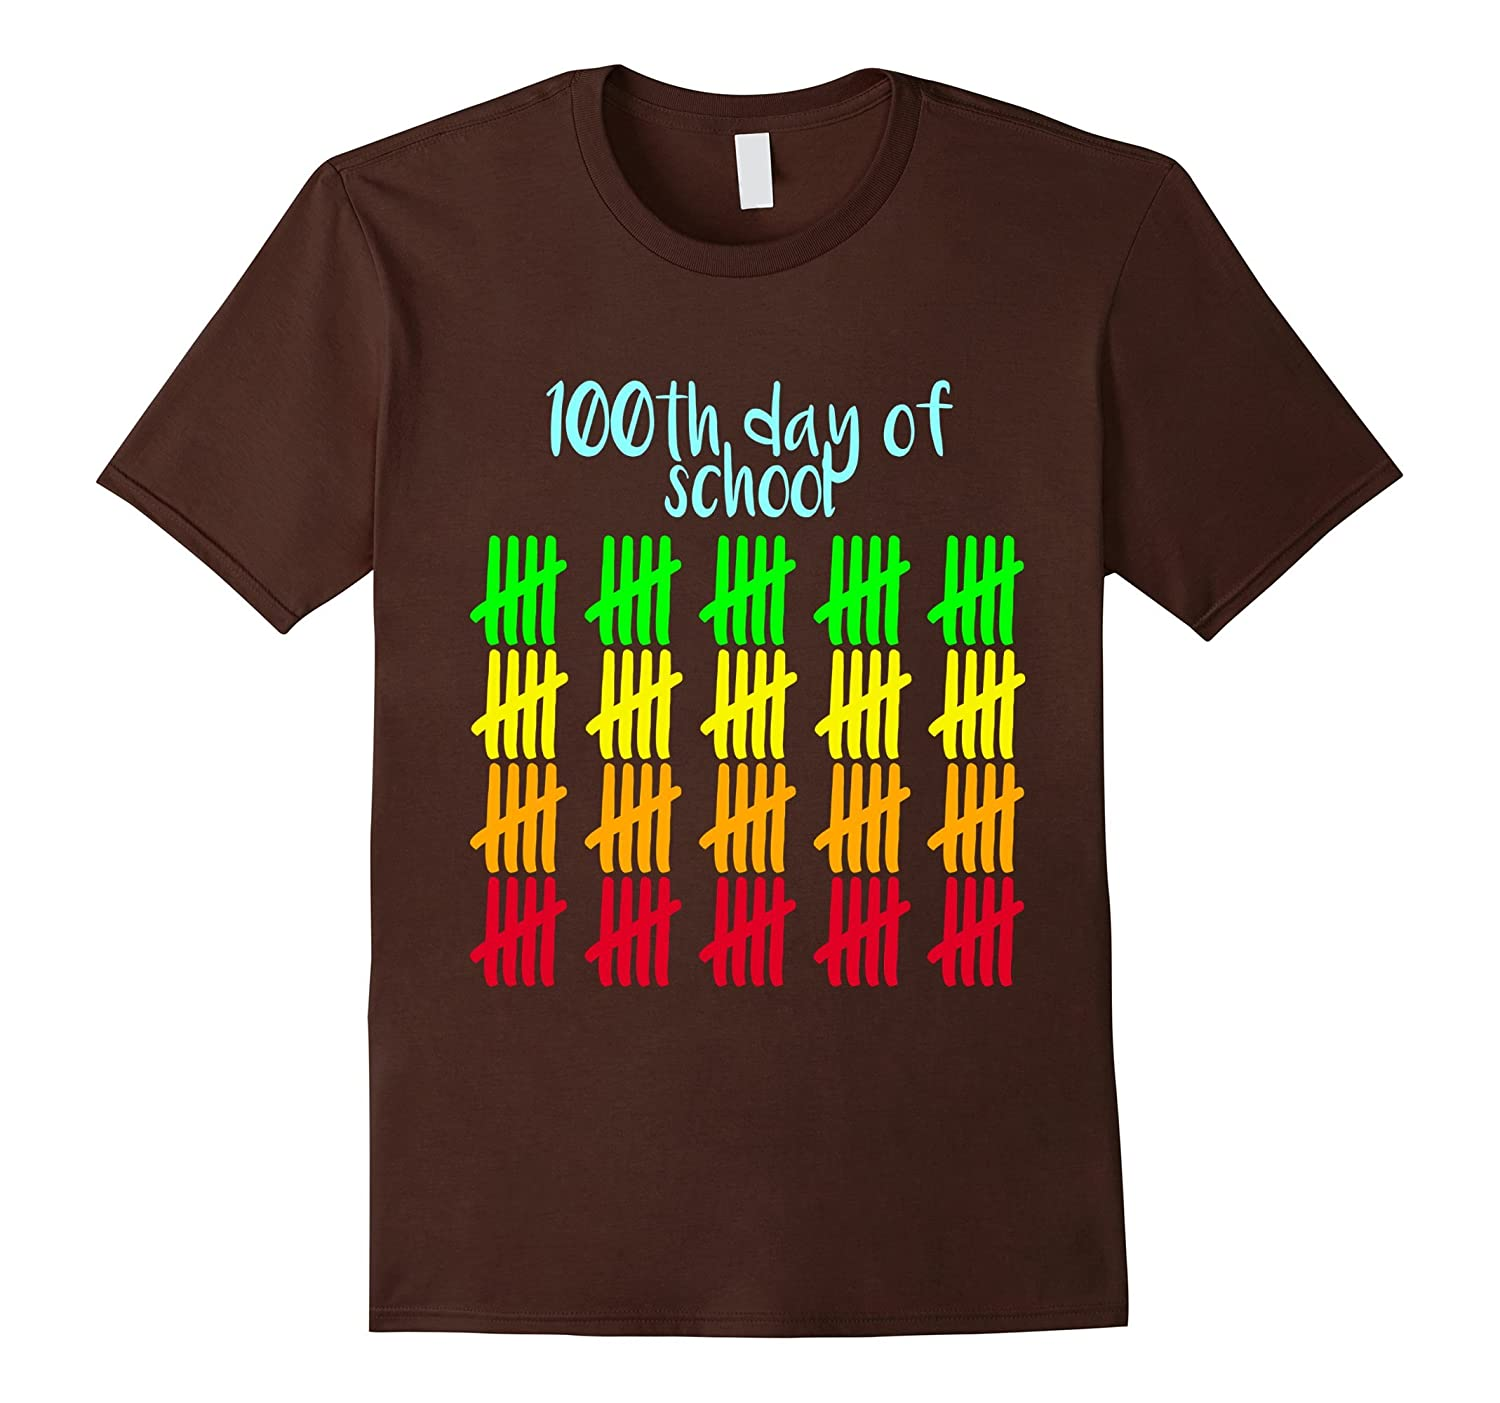 100th Day of School T-Shirt Happy 100th Day of School Tee-RT